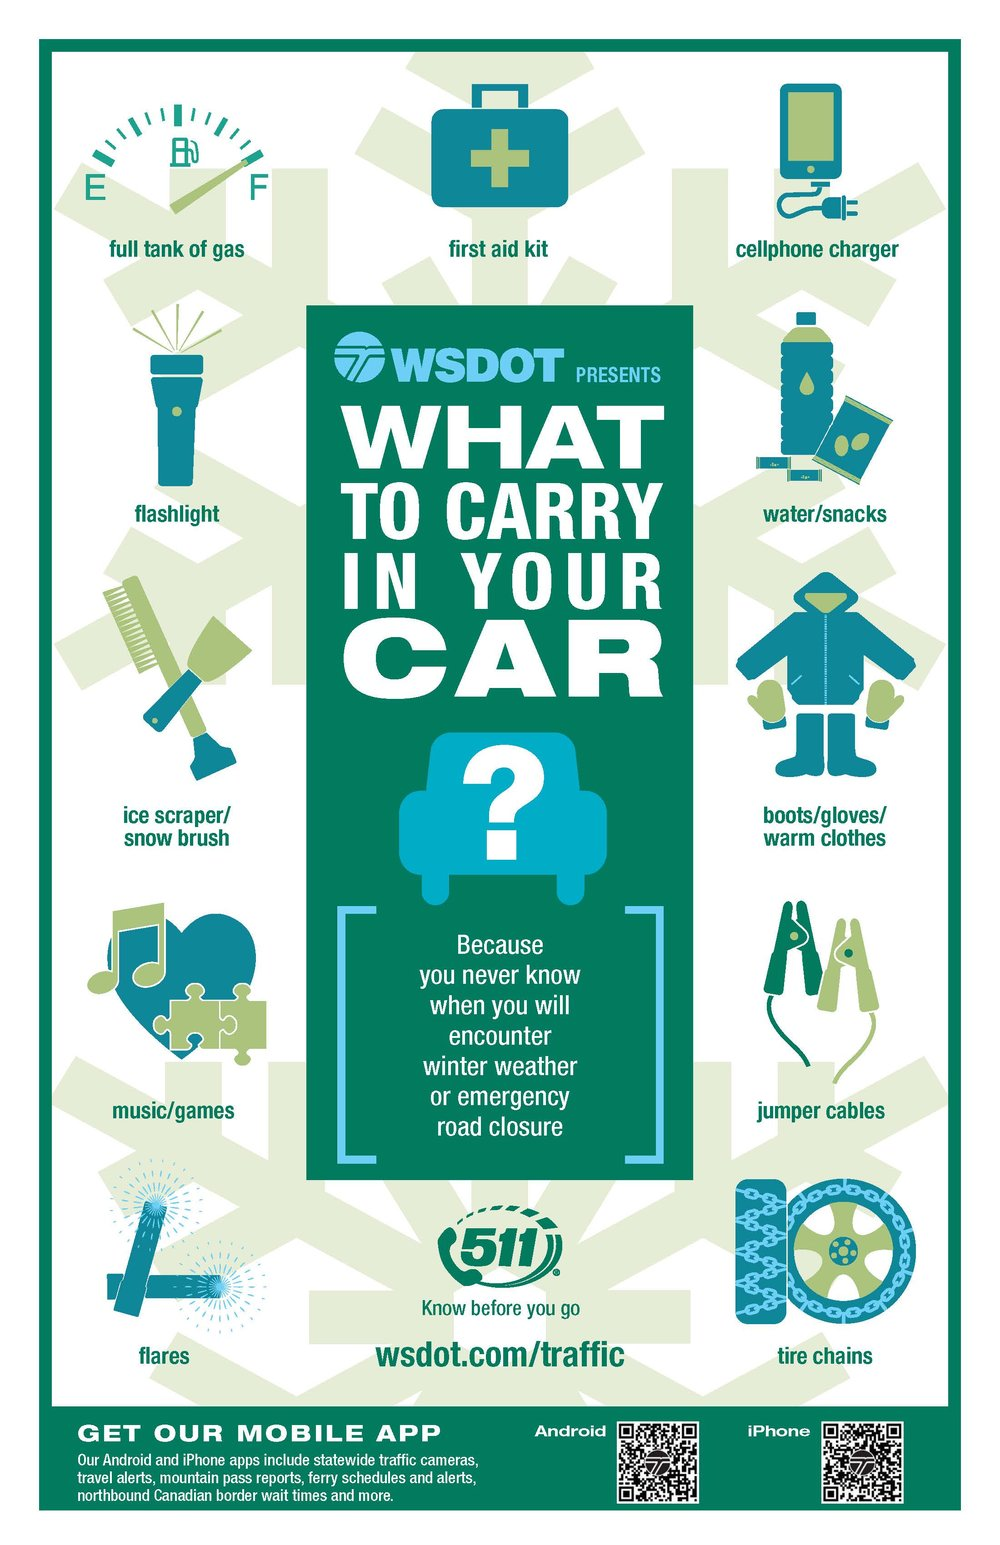 https://www.wsdot.com/winter/files/WhatToCarry2016.pdf